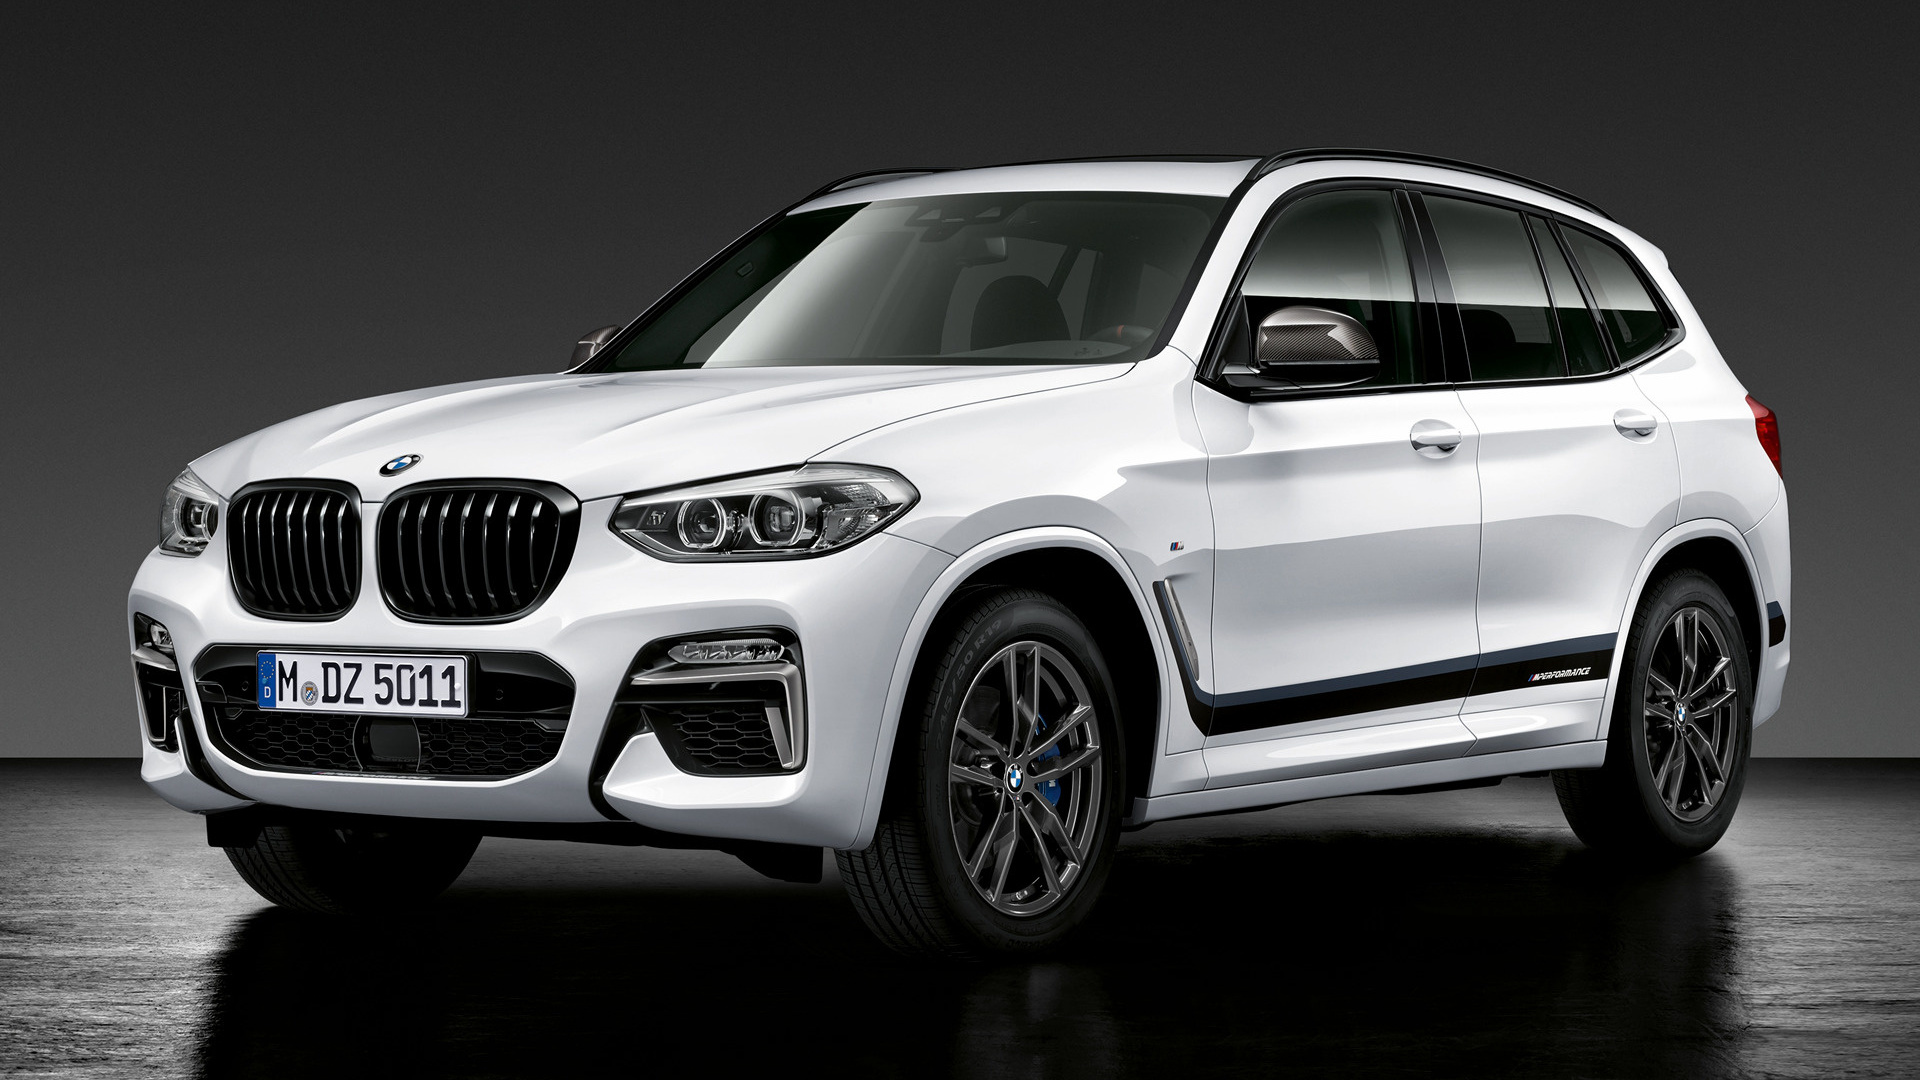 2018 BMW X3 with M Performance Parts - Wallpapers and HD ...